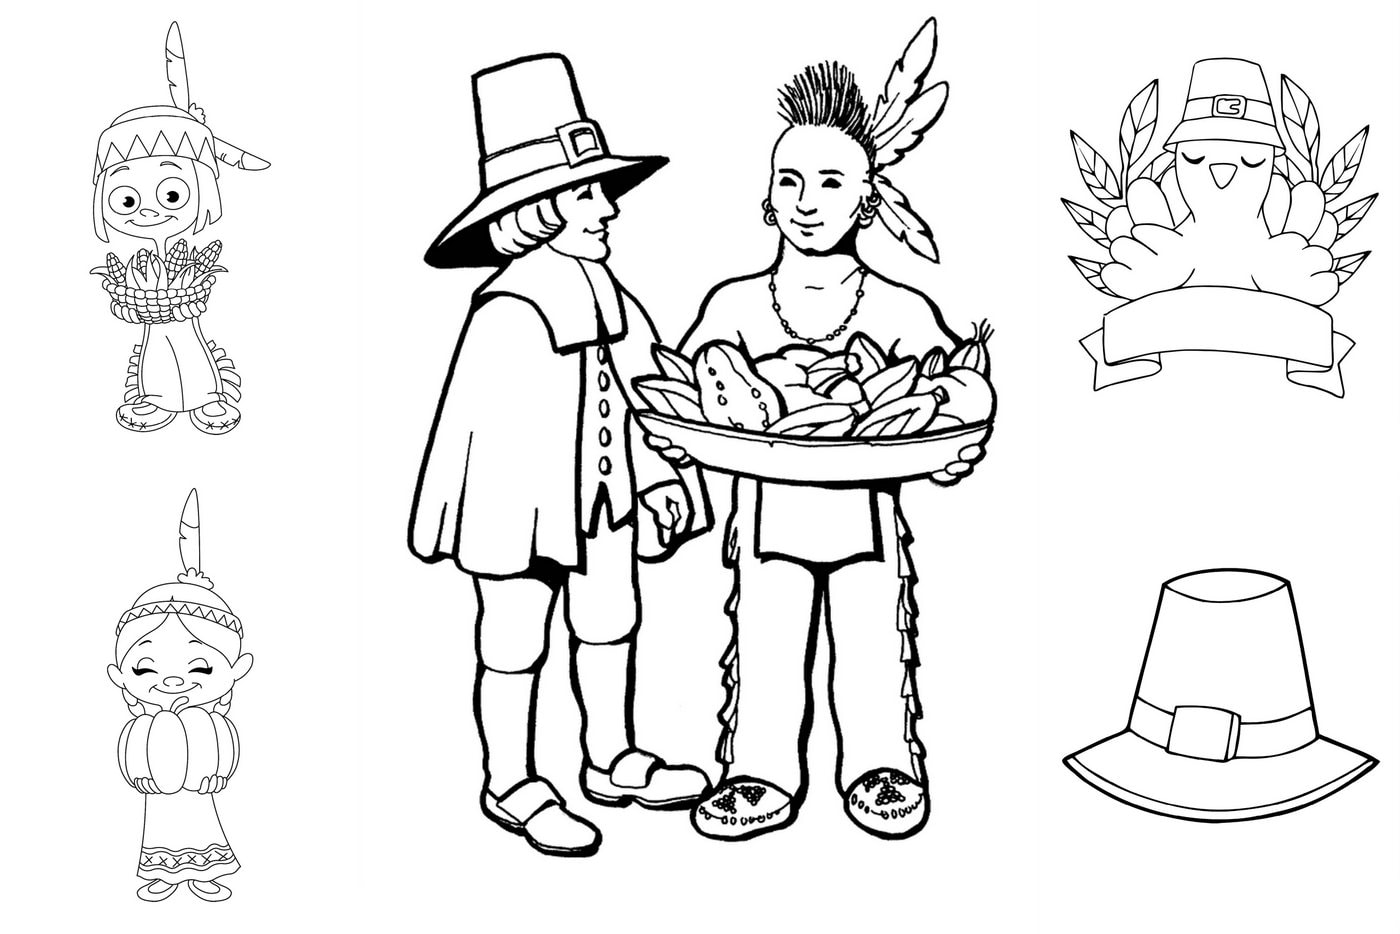 free first thanksgiving coloring with pilgrims and native americans print color fun diy coloring pages First Thanksgiving Coloring Page